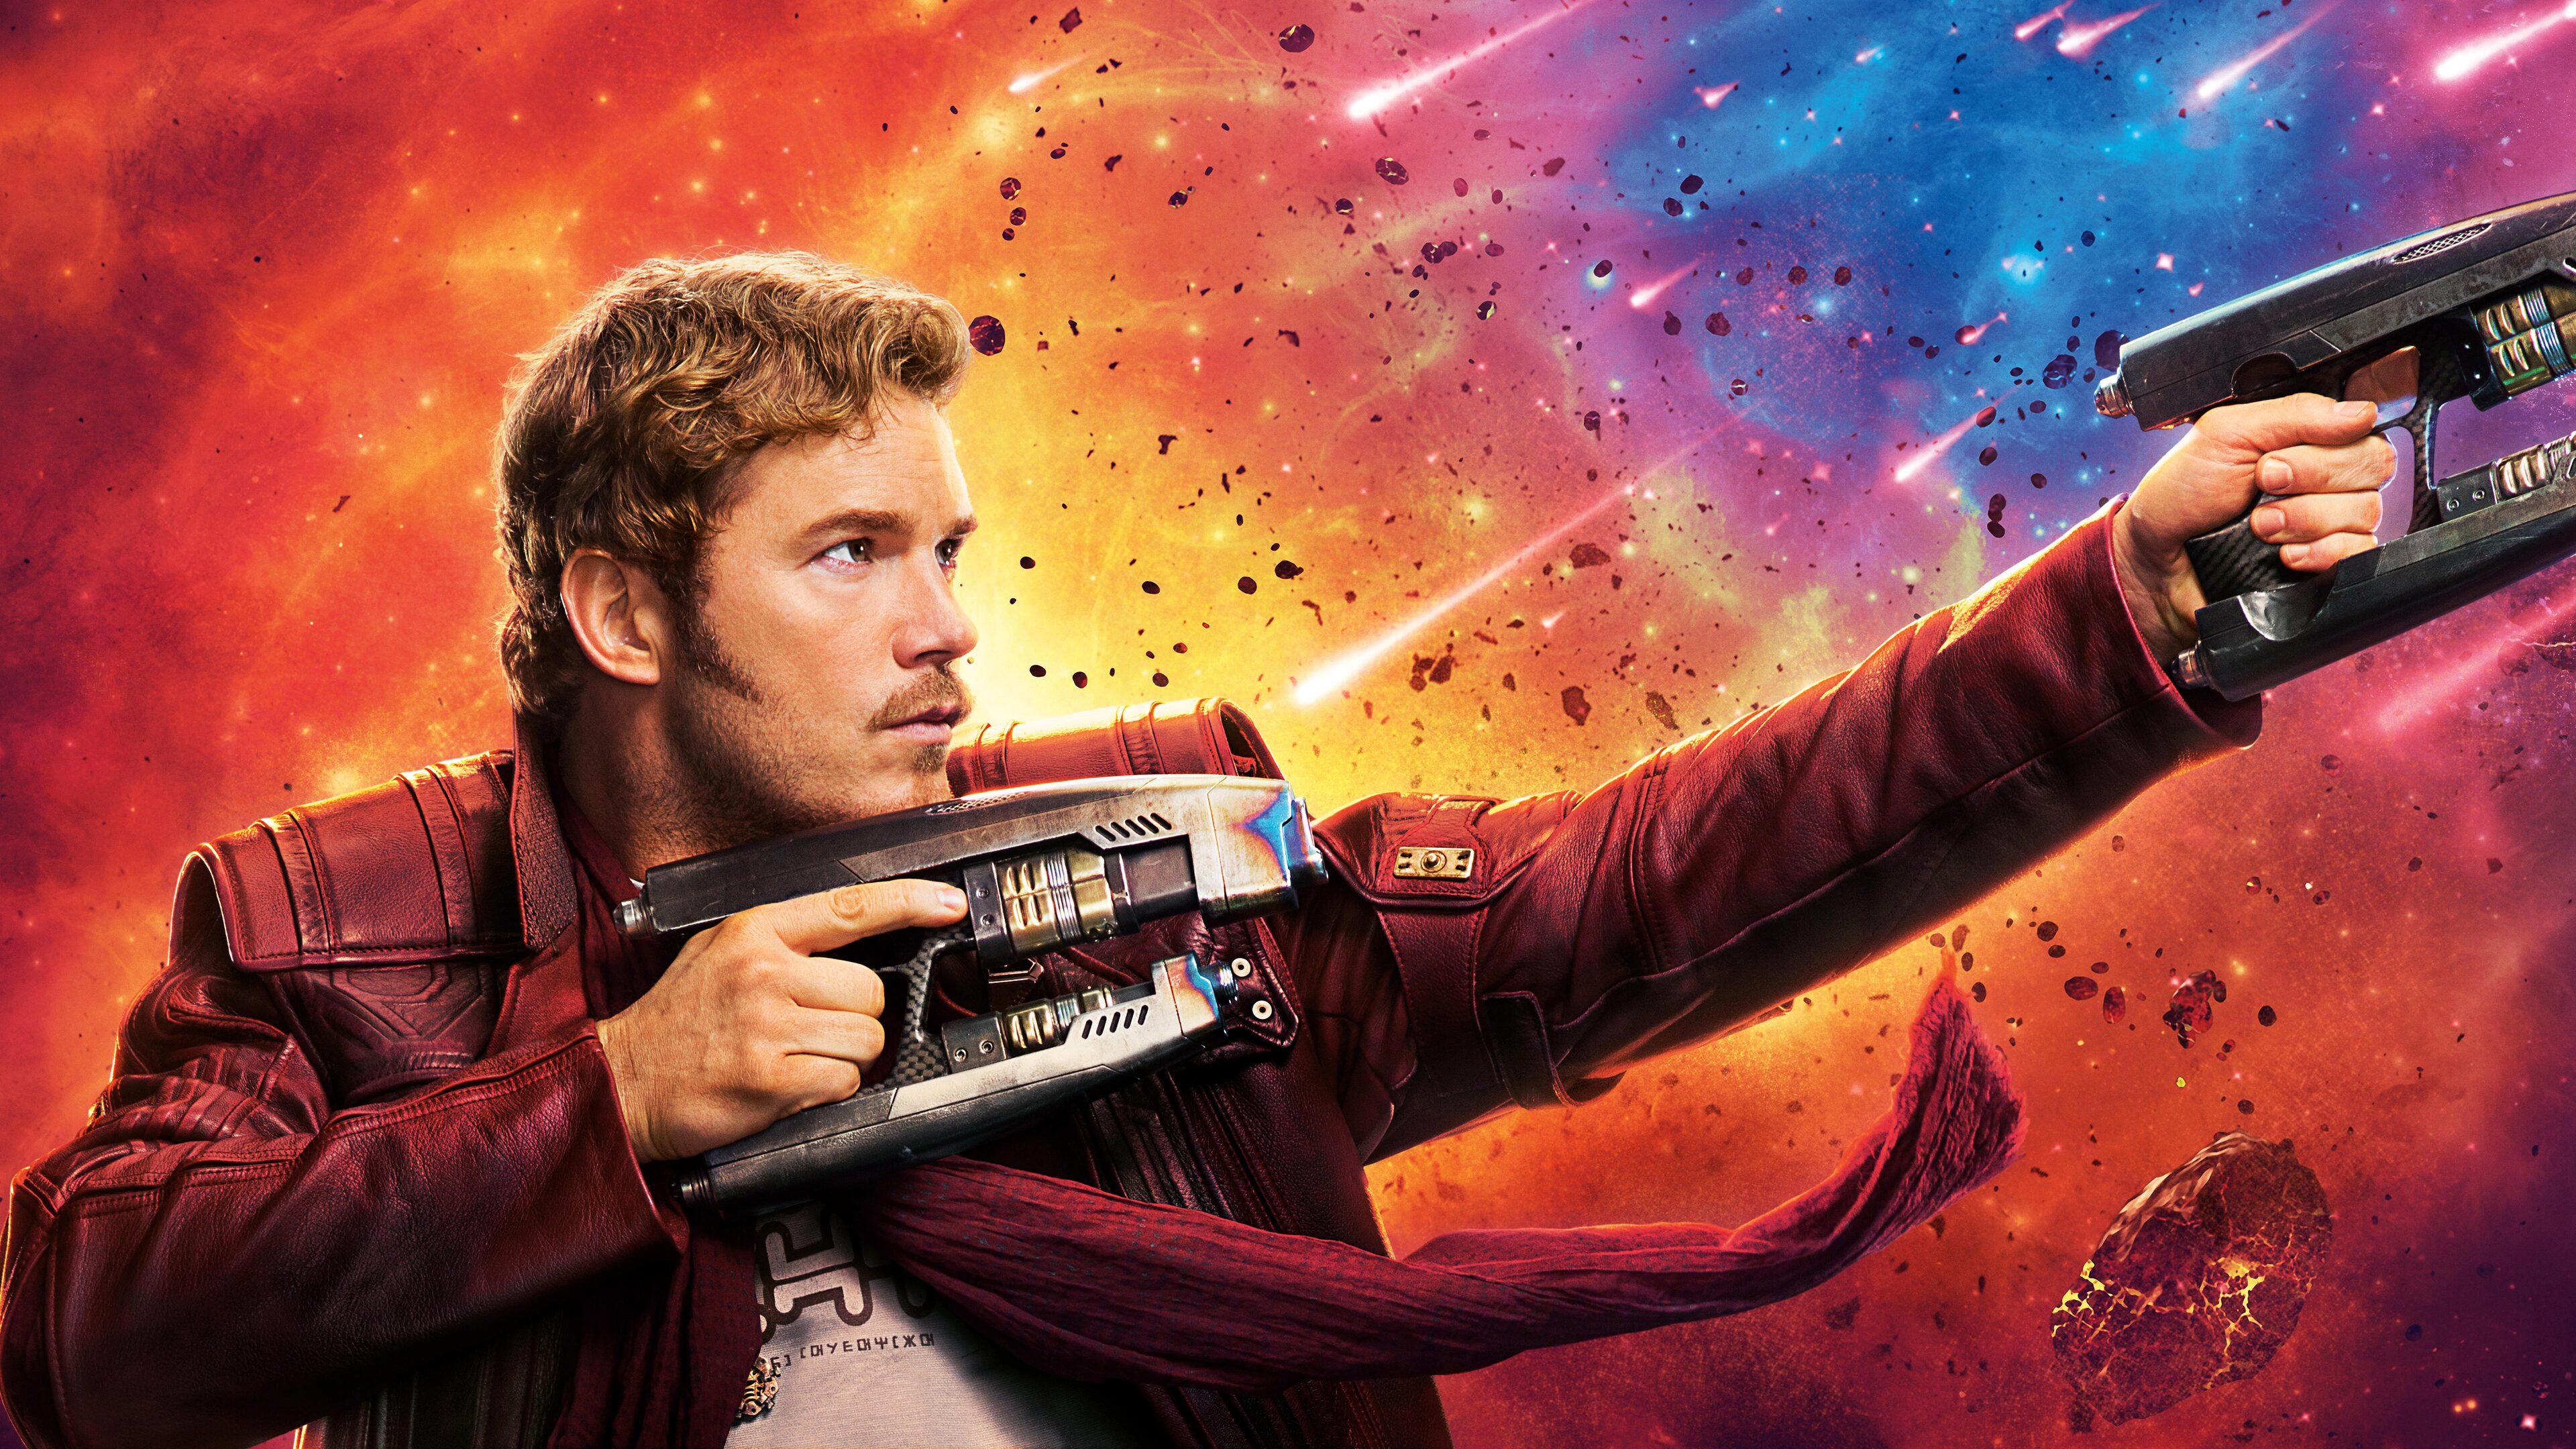 Guardians Of The Galaxy Star Lord Abstract Art 4k Hd: 3840x2160 Star Lord Guardians Of The Galaxy Vol 2 4k 8k 4k